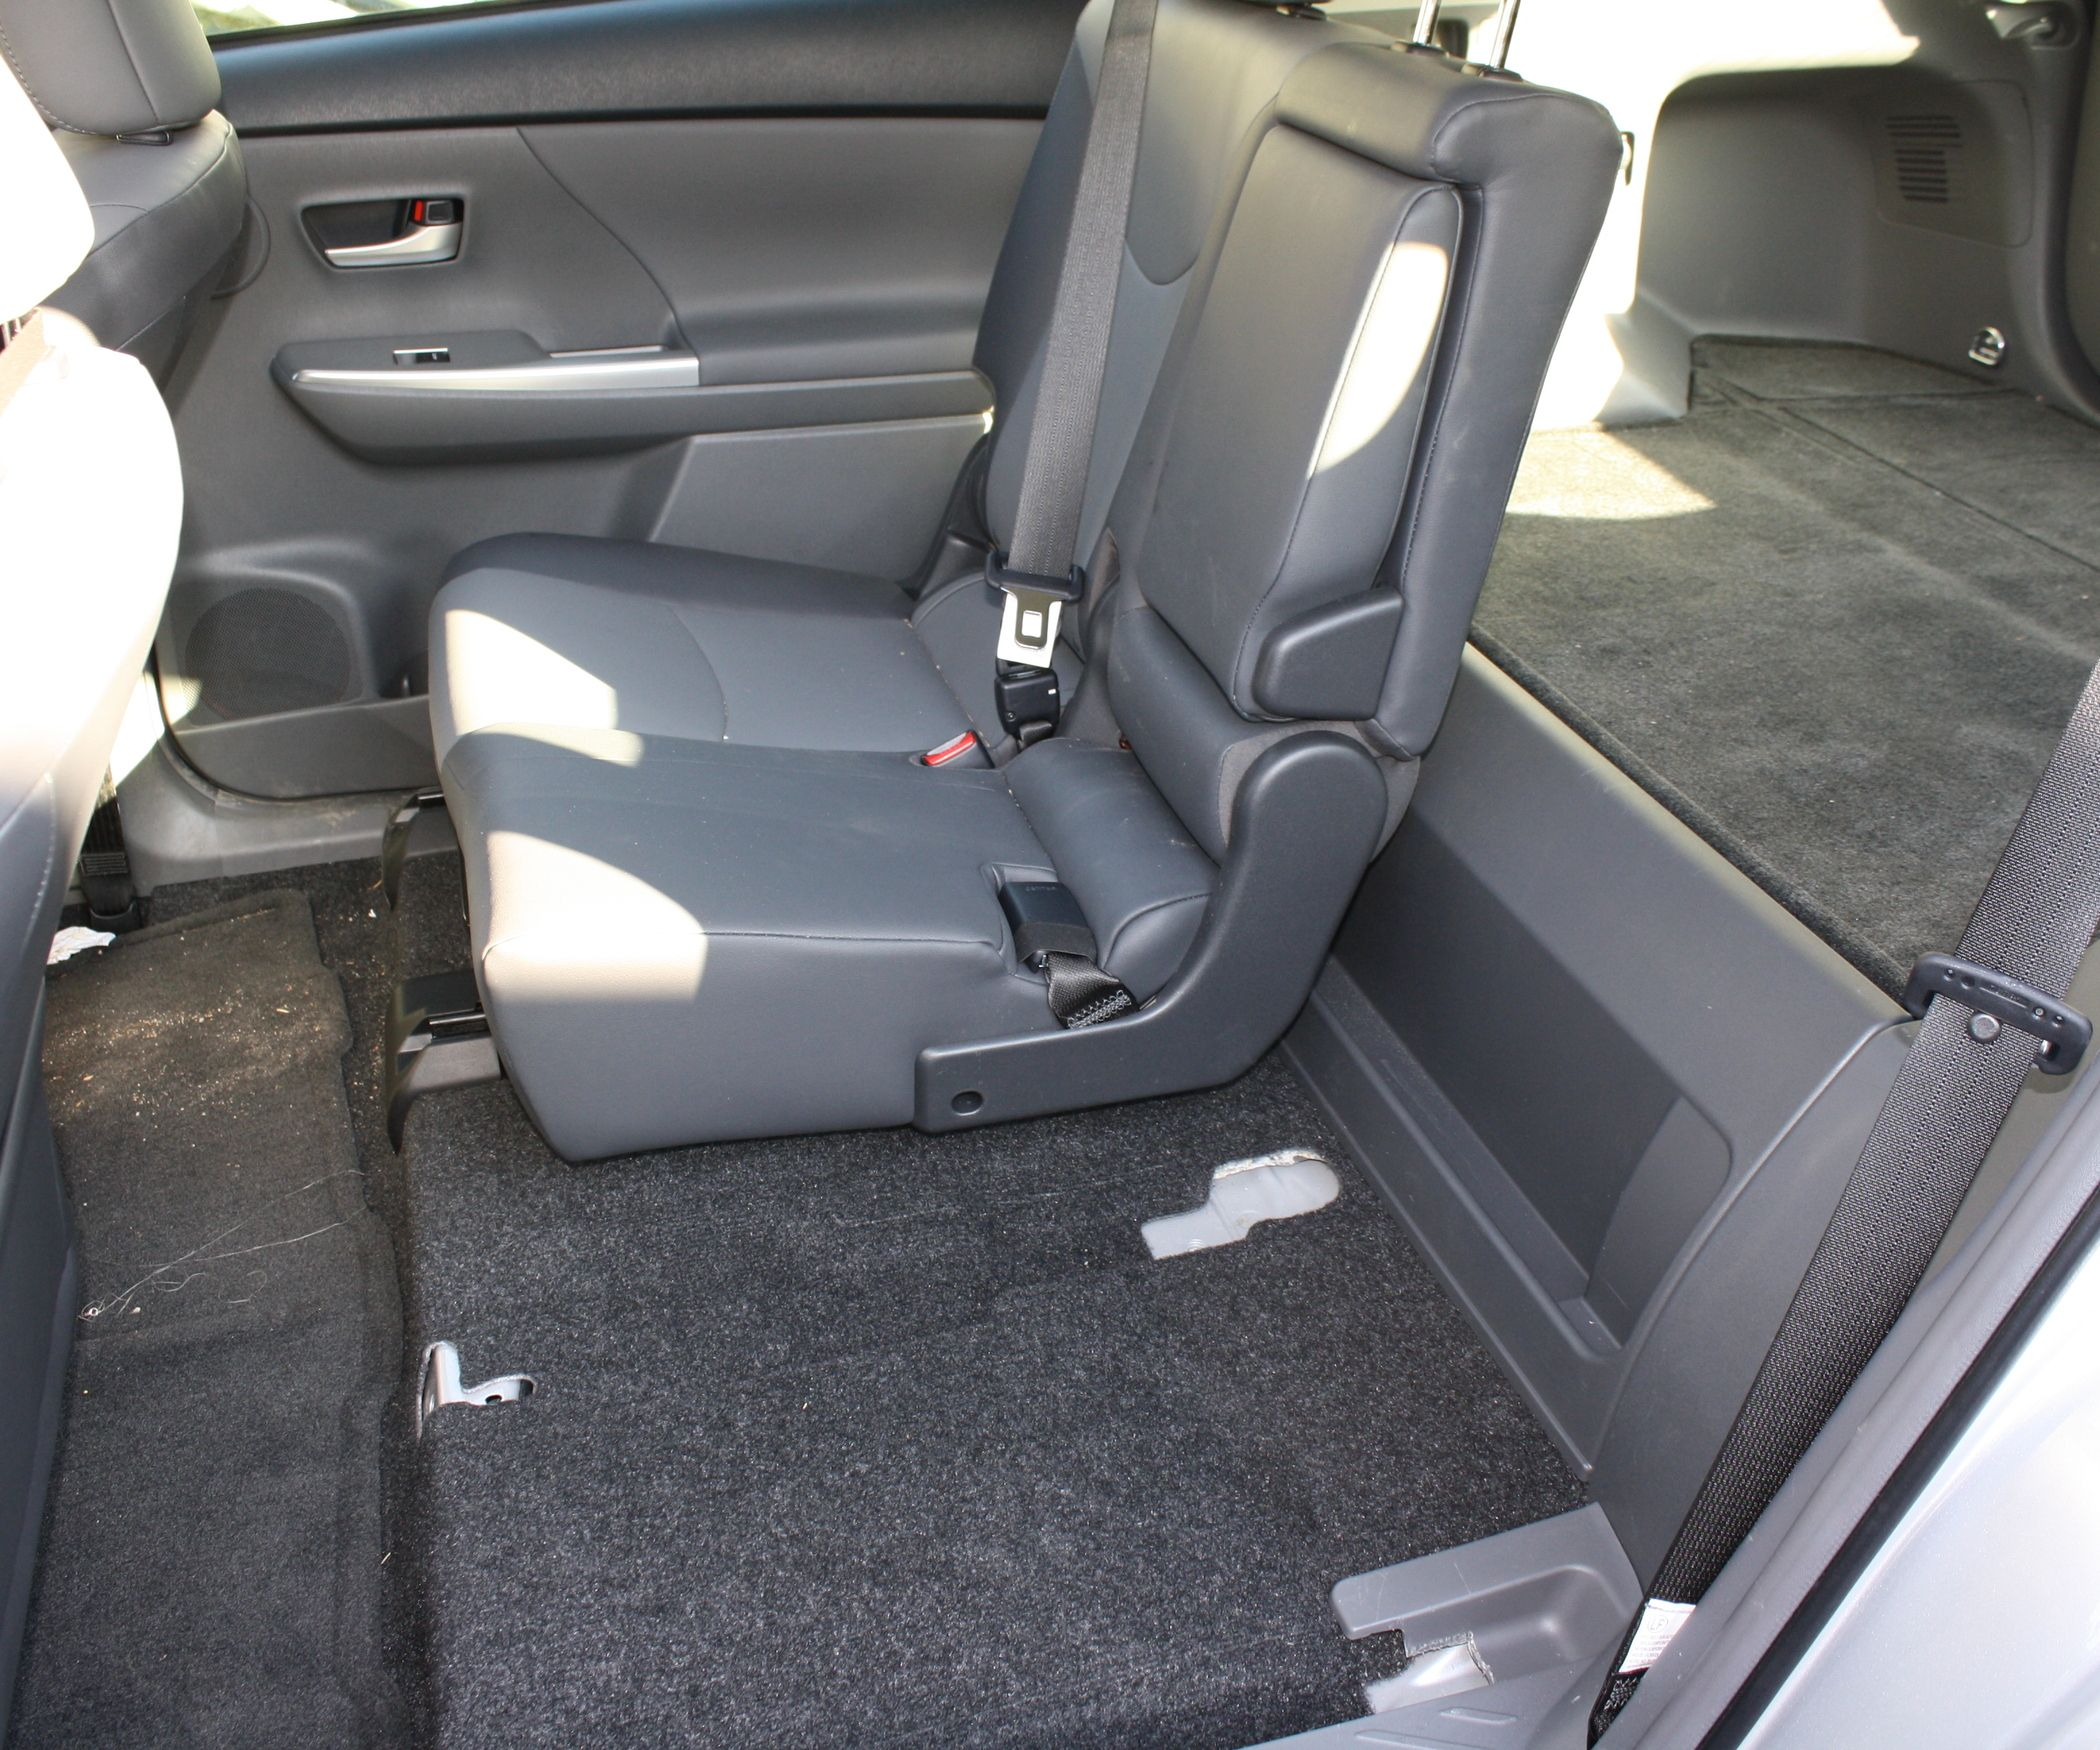 How To Remove The Rear Seats From A Toyota Prius V